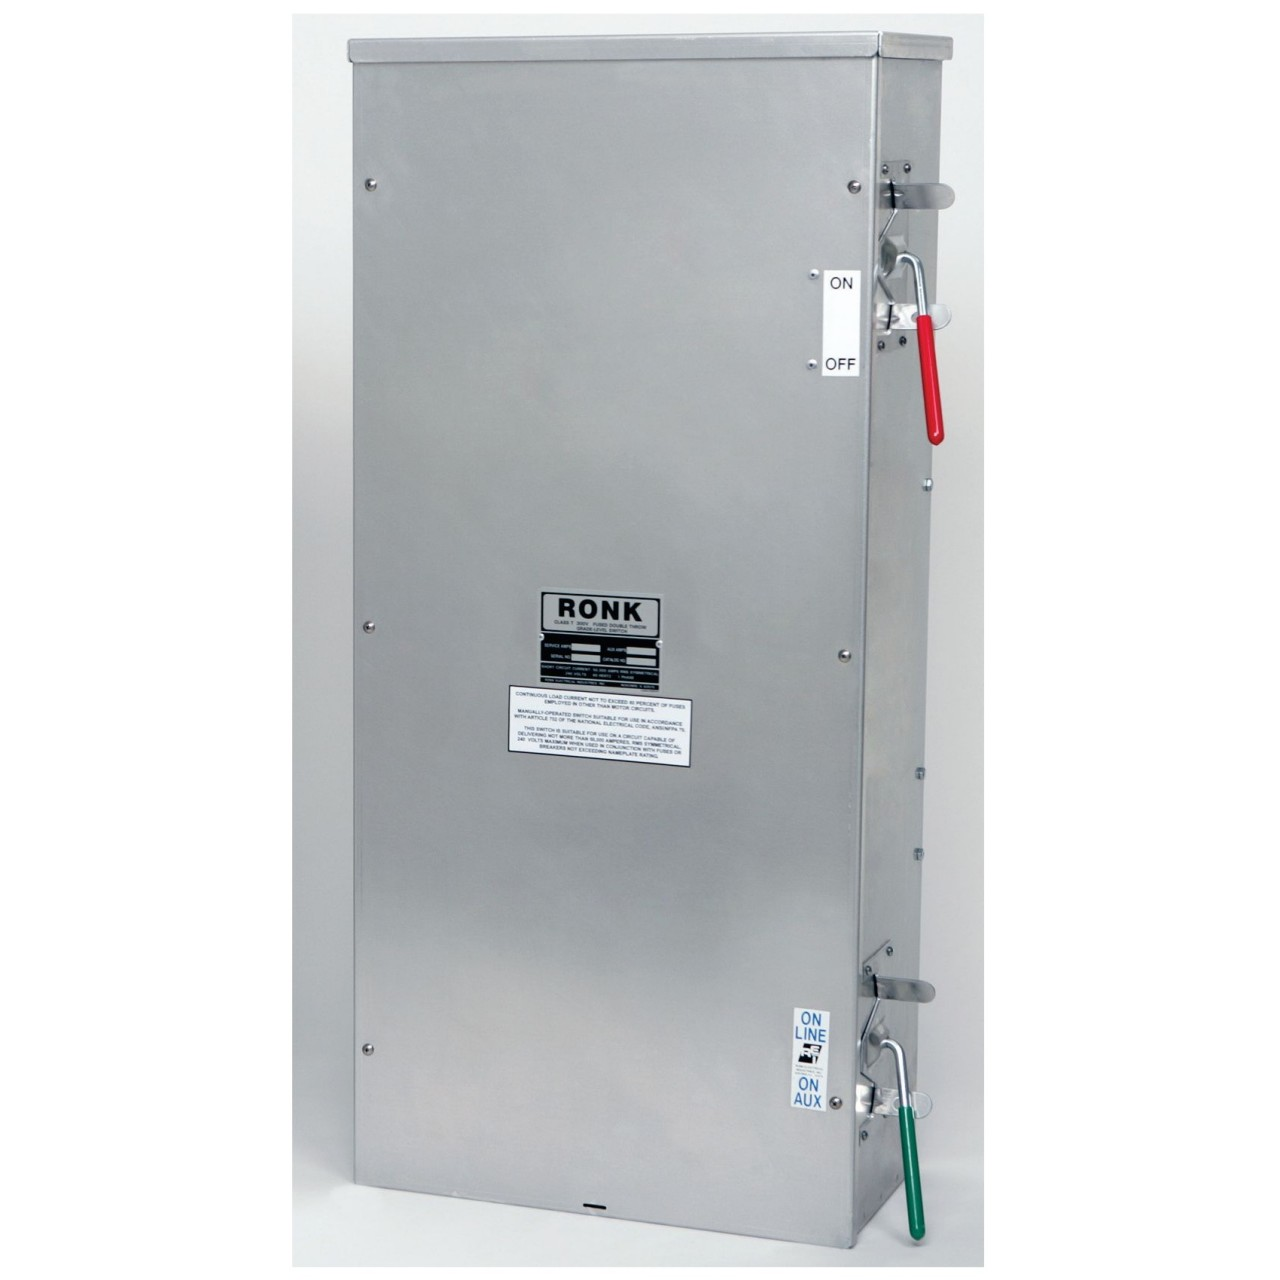 Ronk 7426 Transfer Switch (1Ph, 400A)